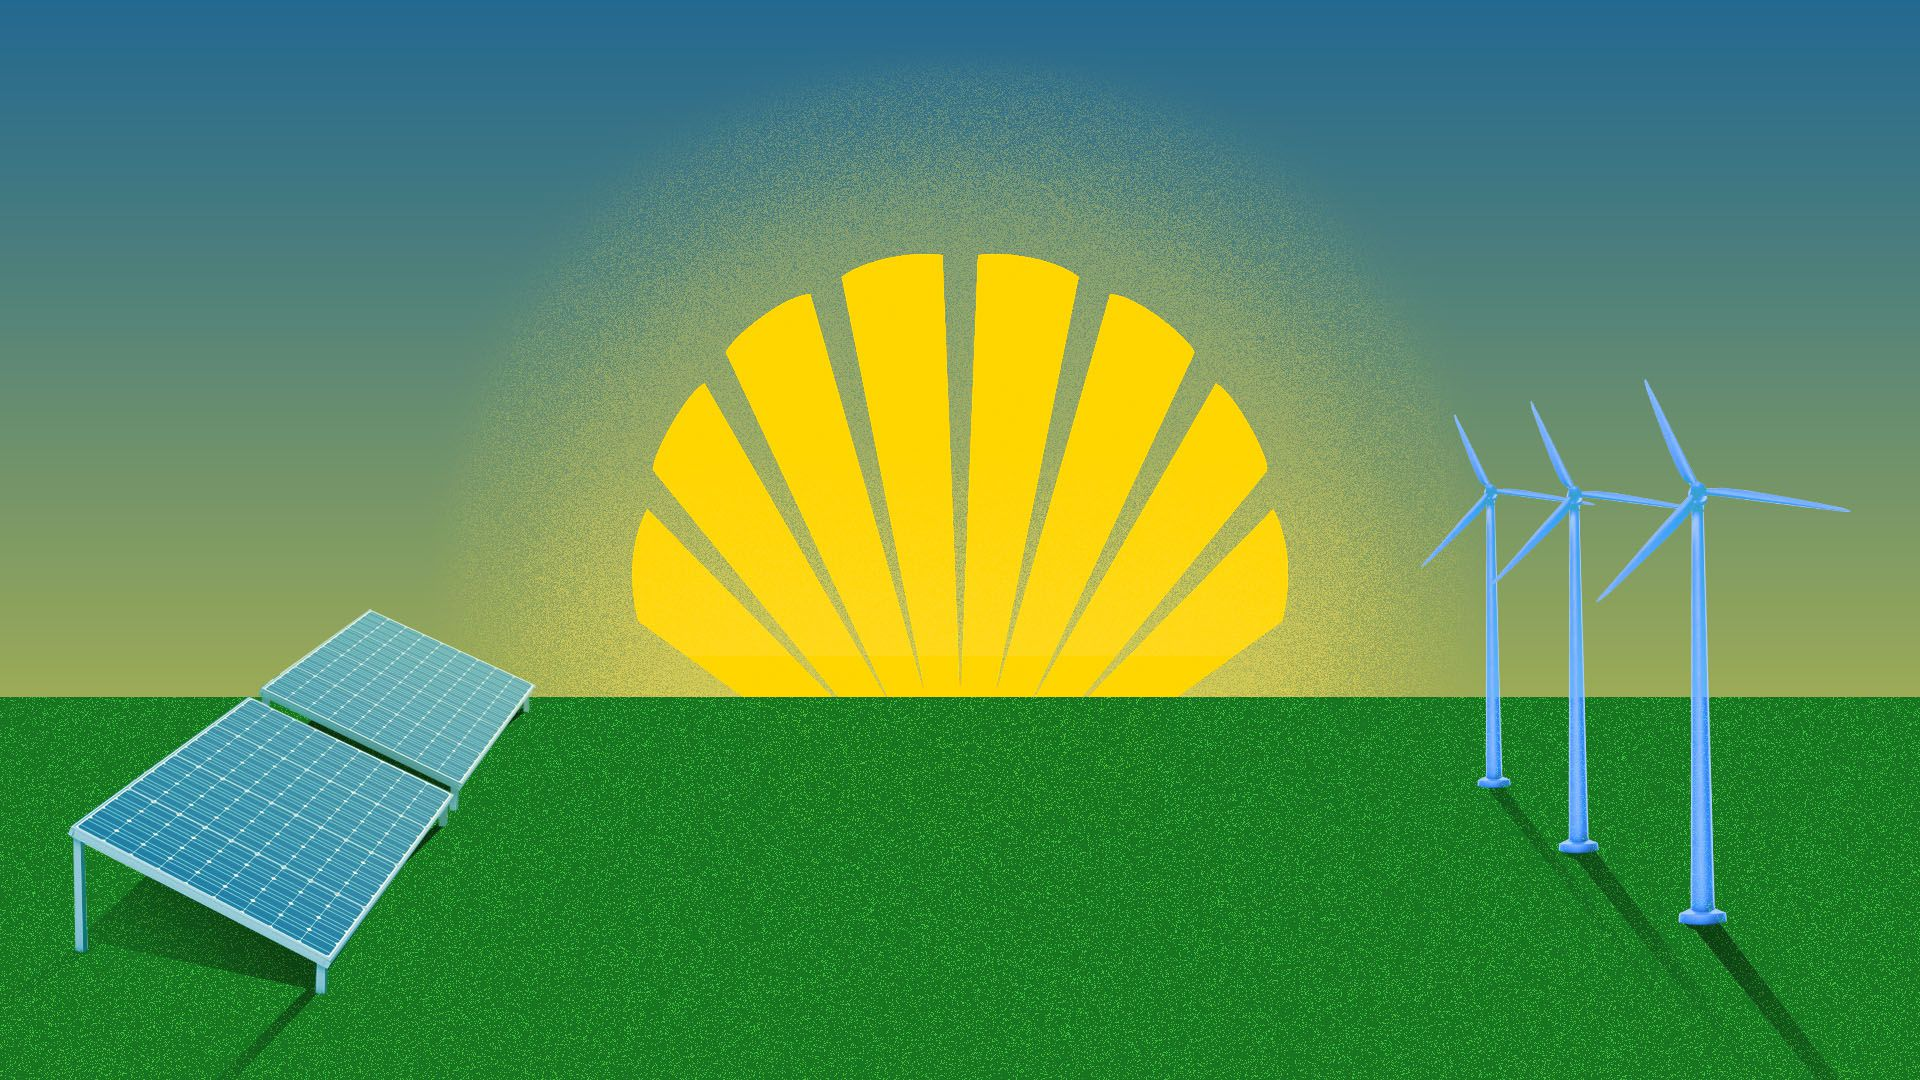 Illustration of Shell logo as sun rising over alternative energy methods